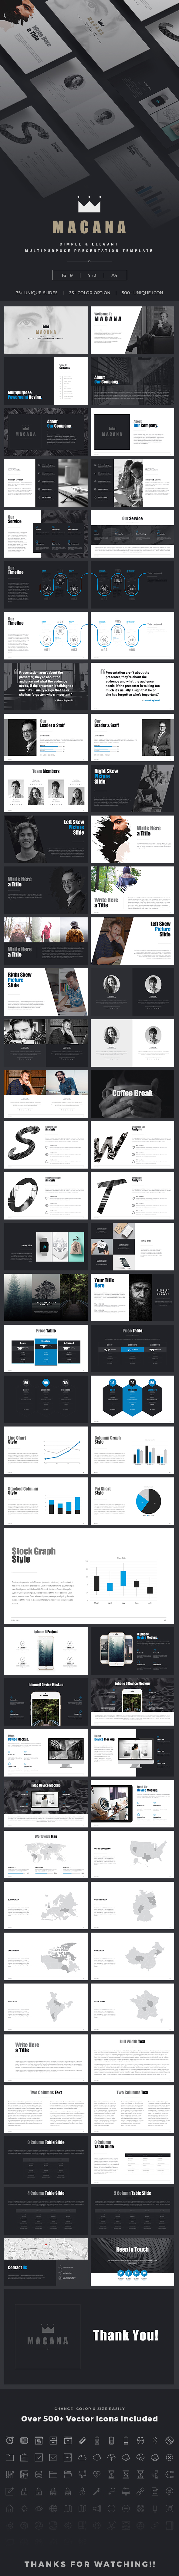 Powerpoint - Business PowerPoint Templates